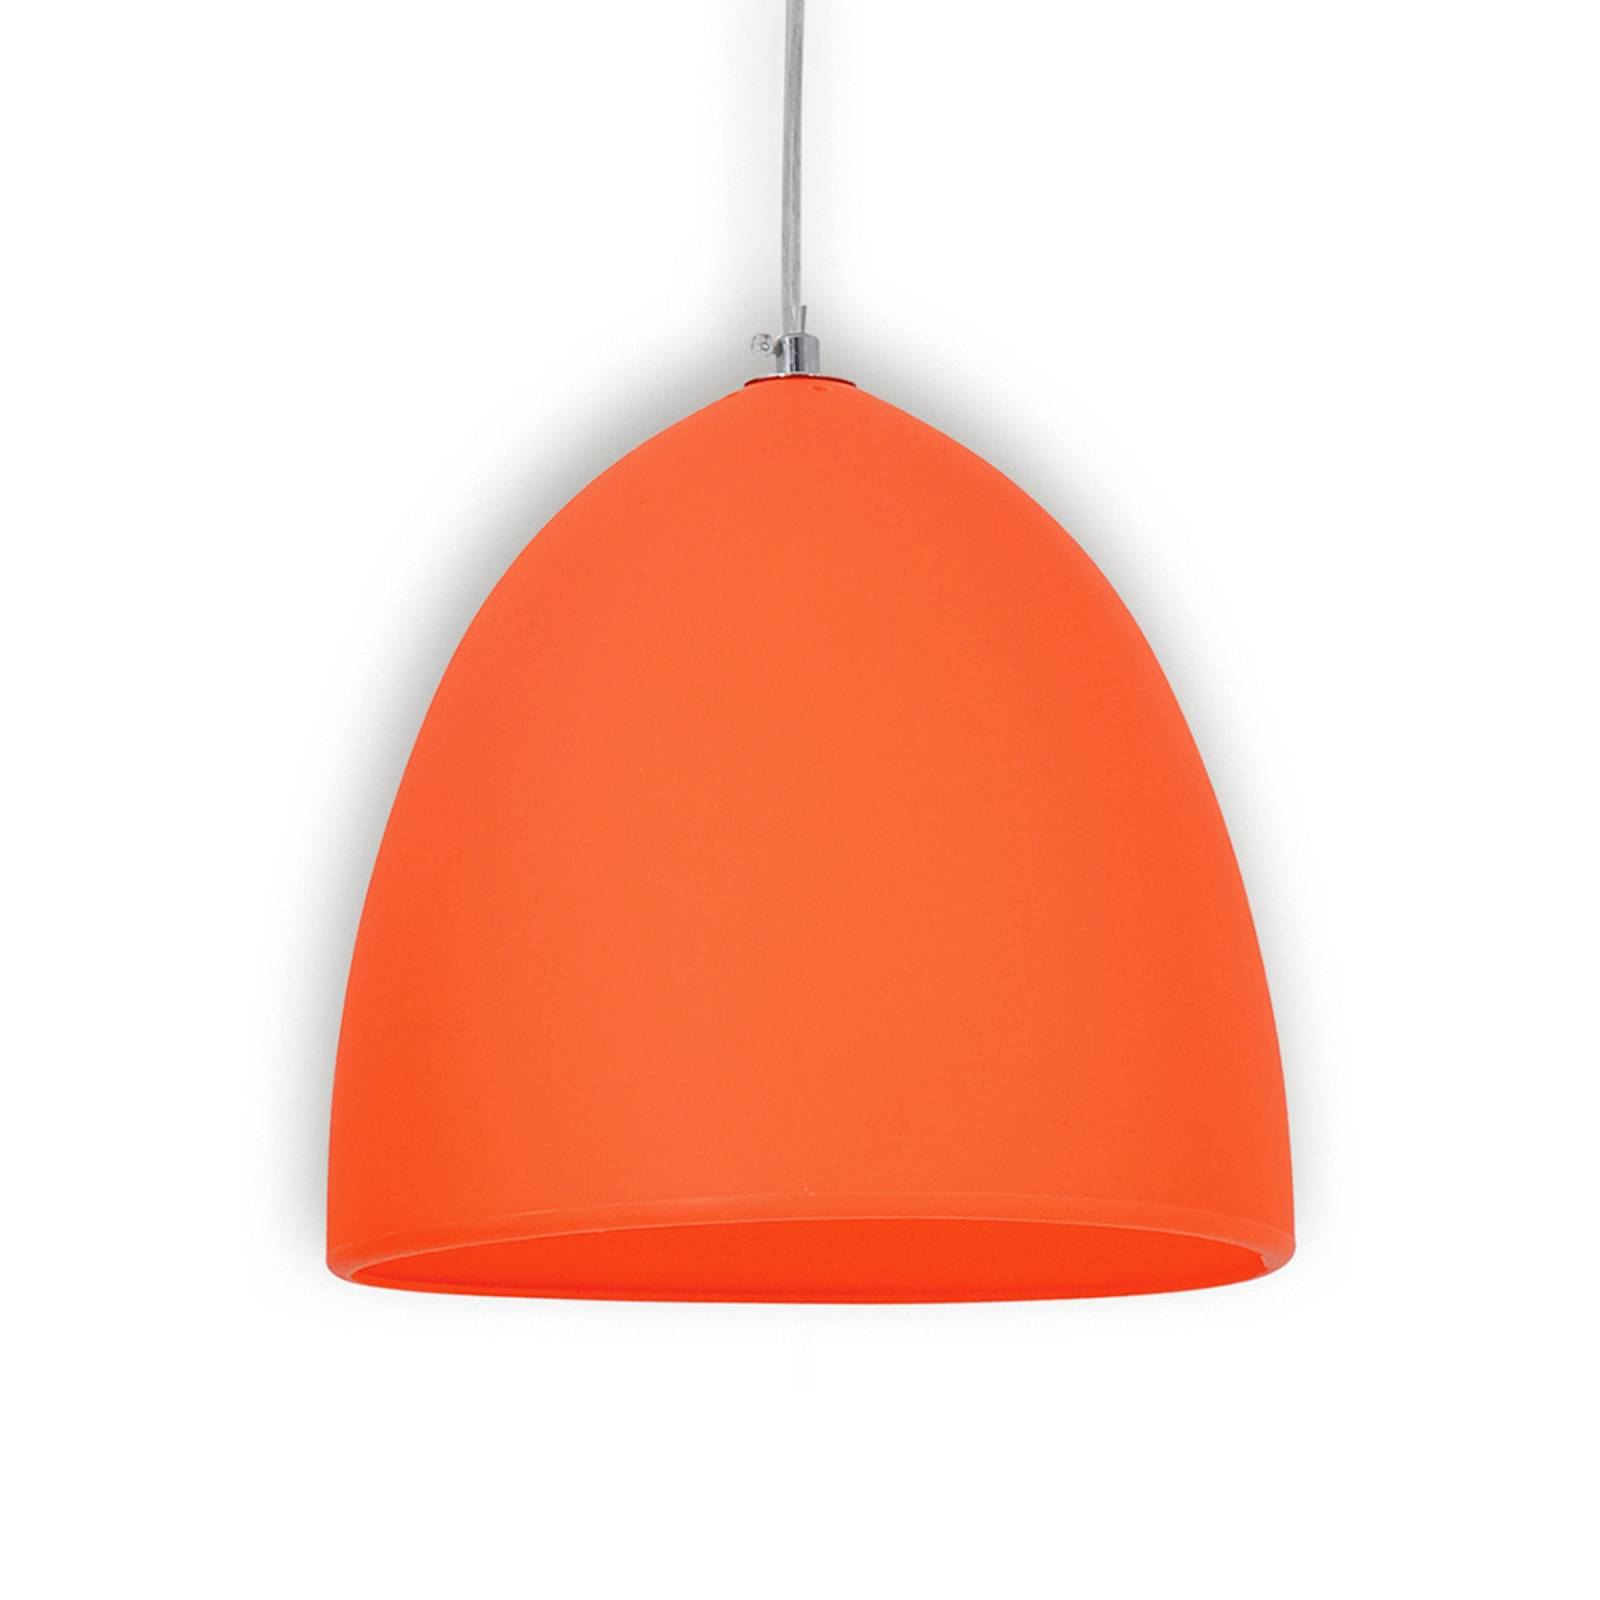 Orange silicon pendant light Fancy from Näve